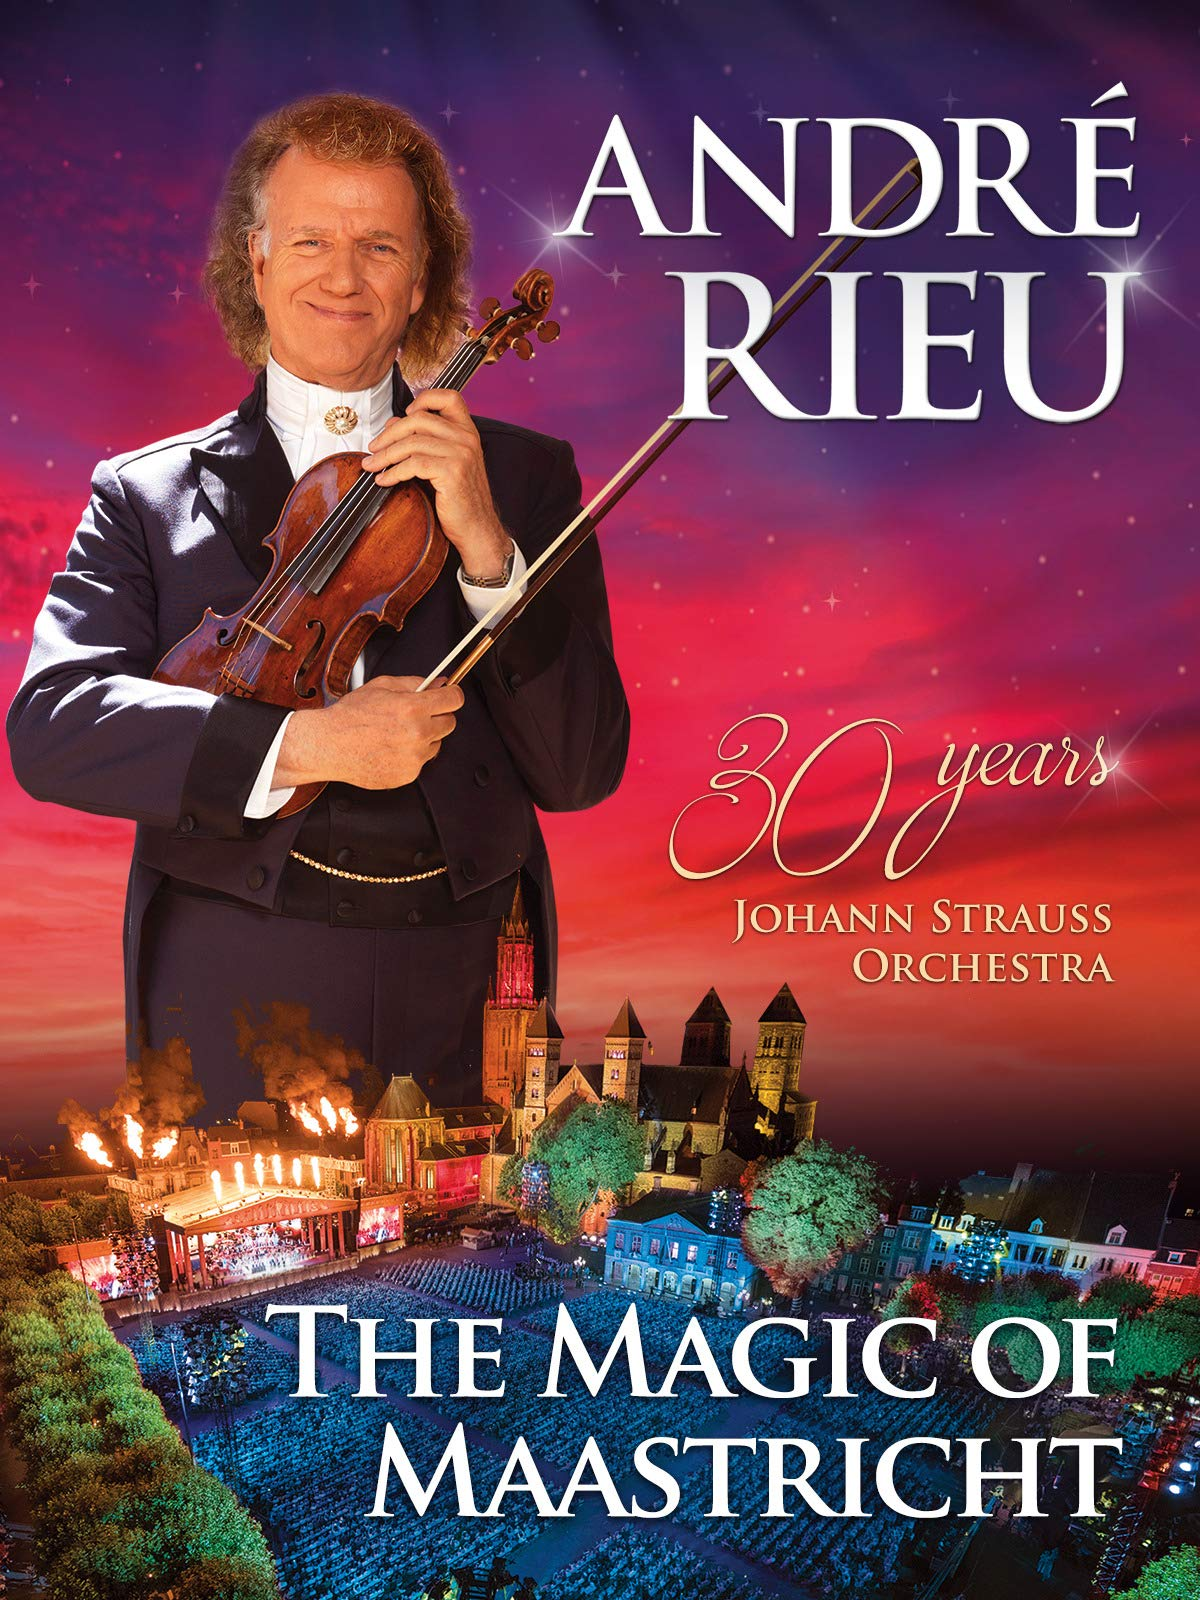 André Rieu And His Johann Strauss Orchestra - The Magic Of Maastricht - 30 Years Of The Johann Strauss Orchestra